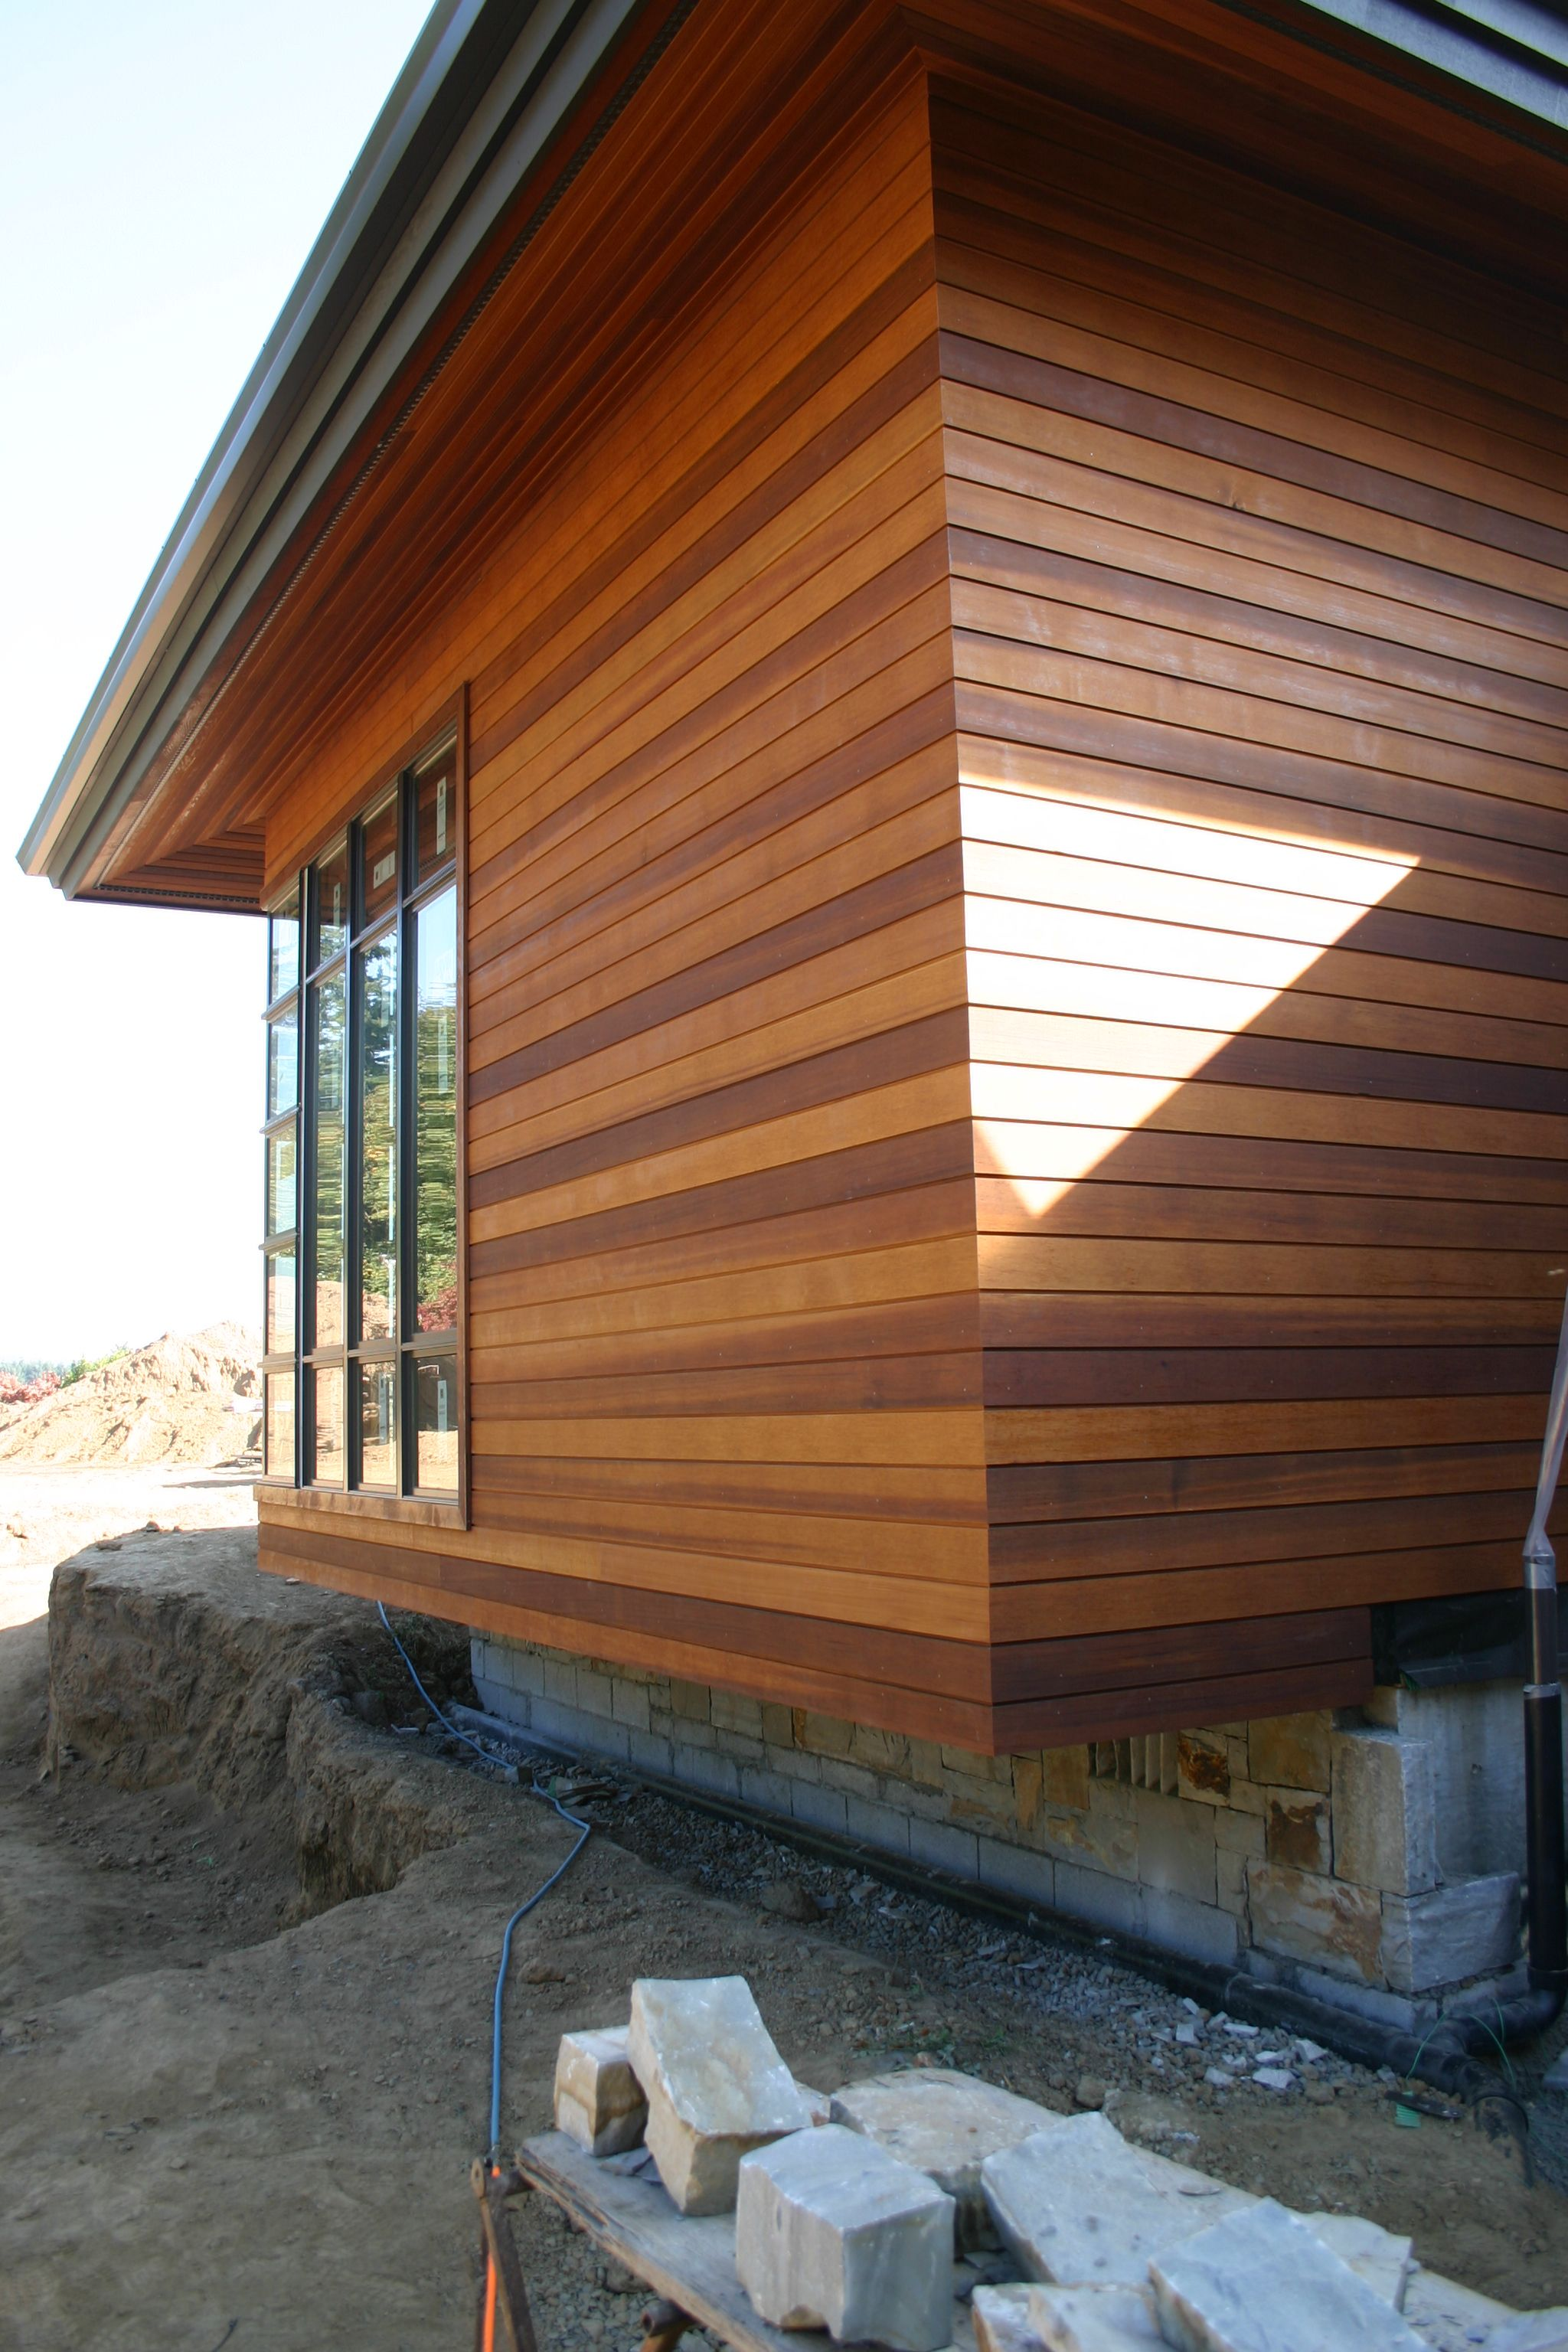 Cedar Siding For The Bump I Like These Colors Clear Vertical Grain Cedar Siding With Images Wood Siding Exterior Modern Siding House Exterior